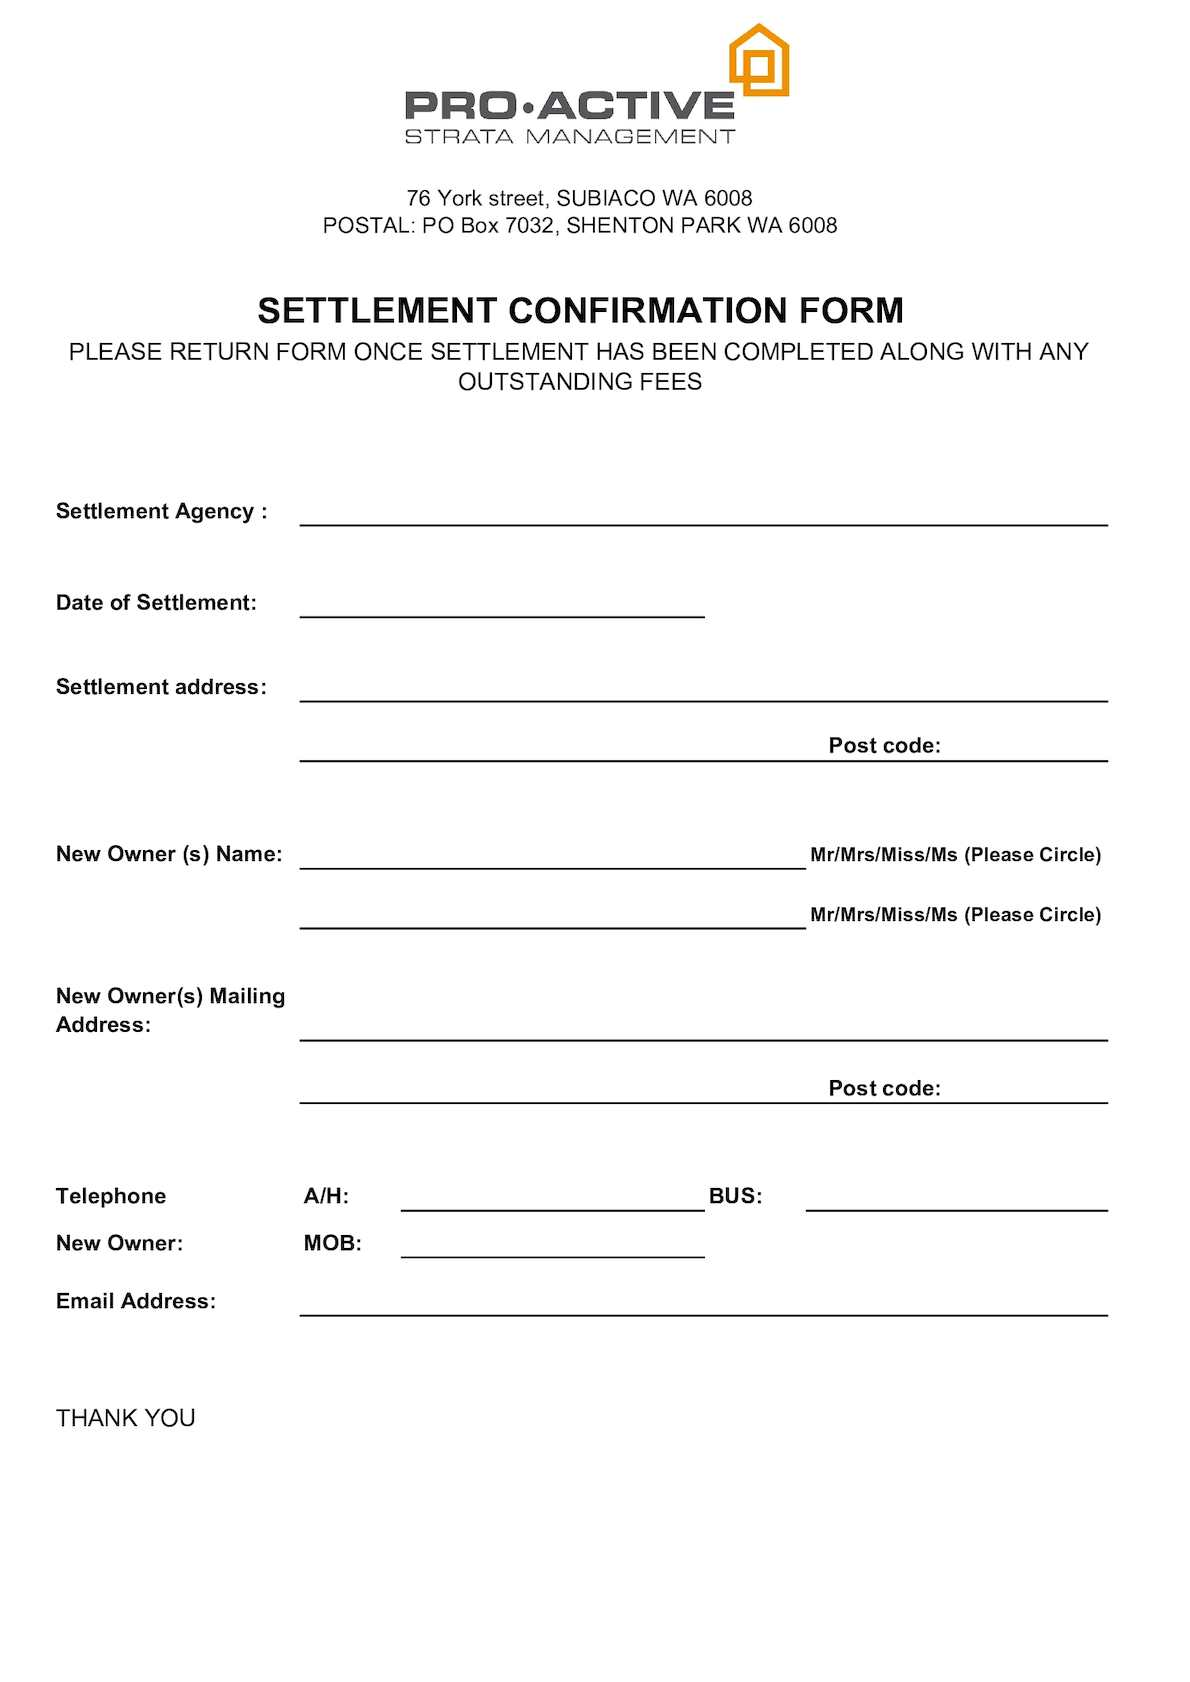 Calaméo - Settlement Confirmation Form